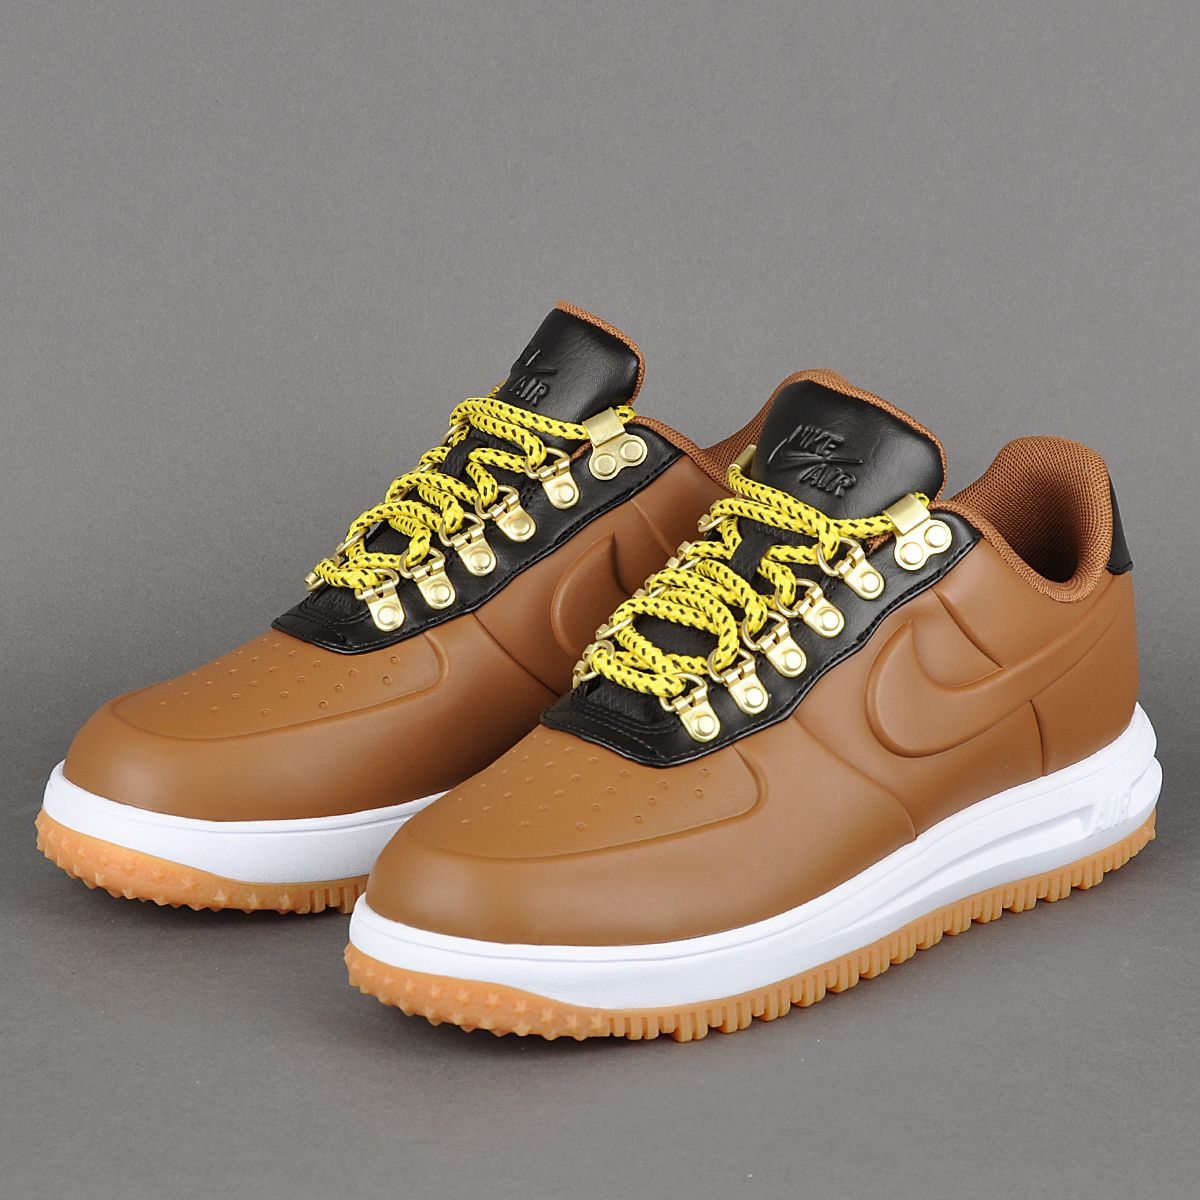 757ab1f5ac1e Nike Lunar Force 1 Duckboot Low